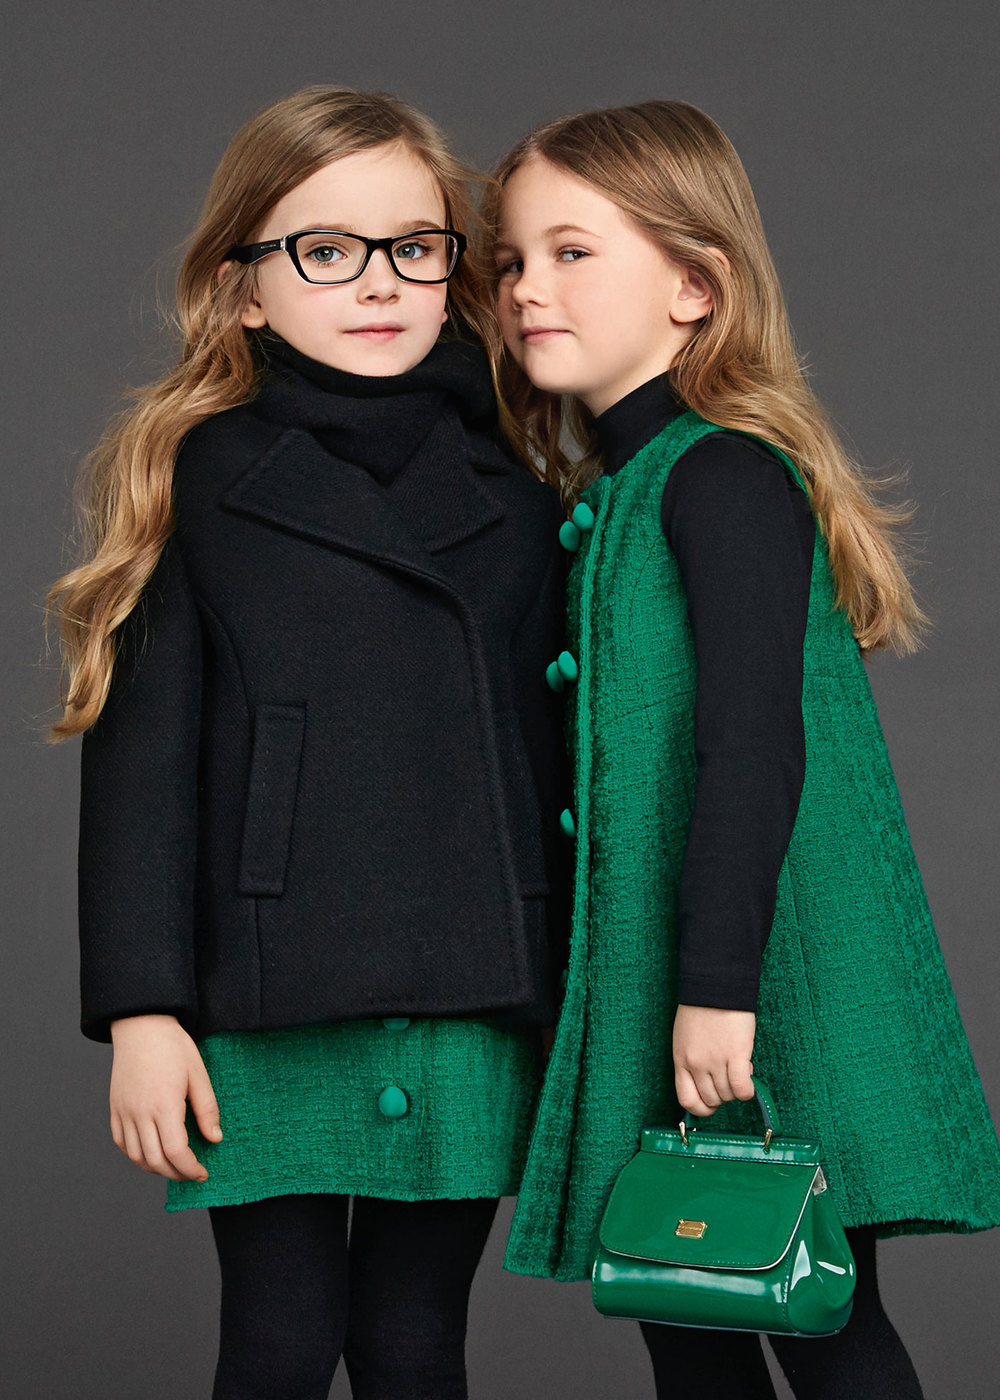 dolce-and-gabbana-winter-2016-child-collection-22-zoom.jpg